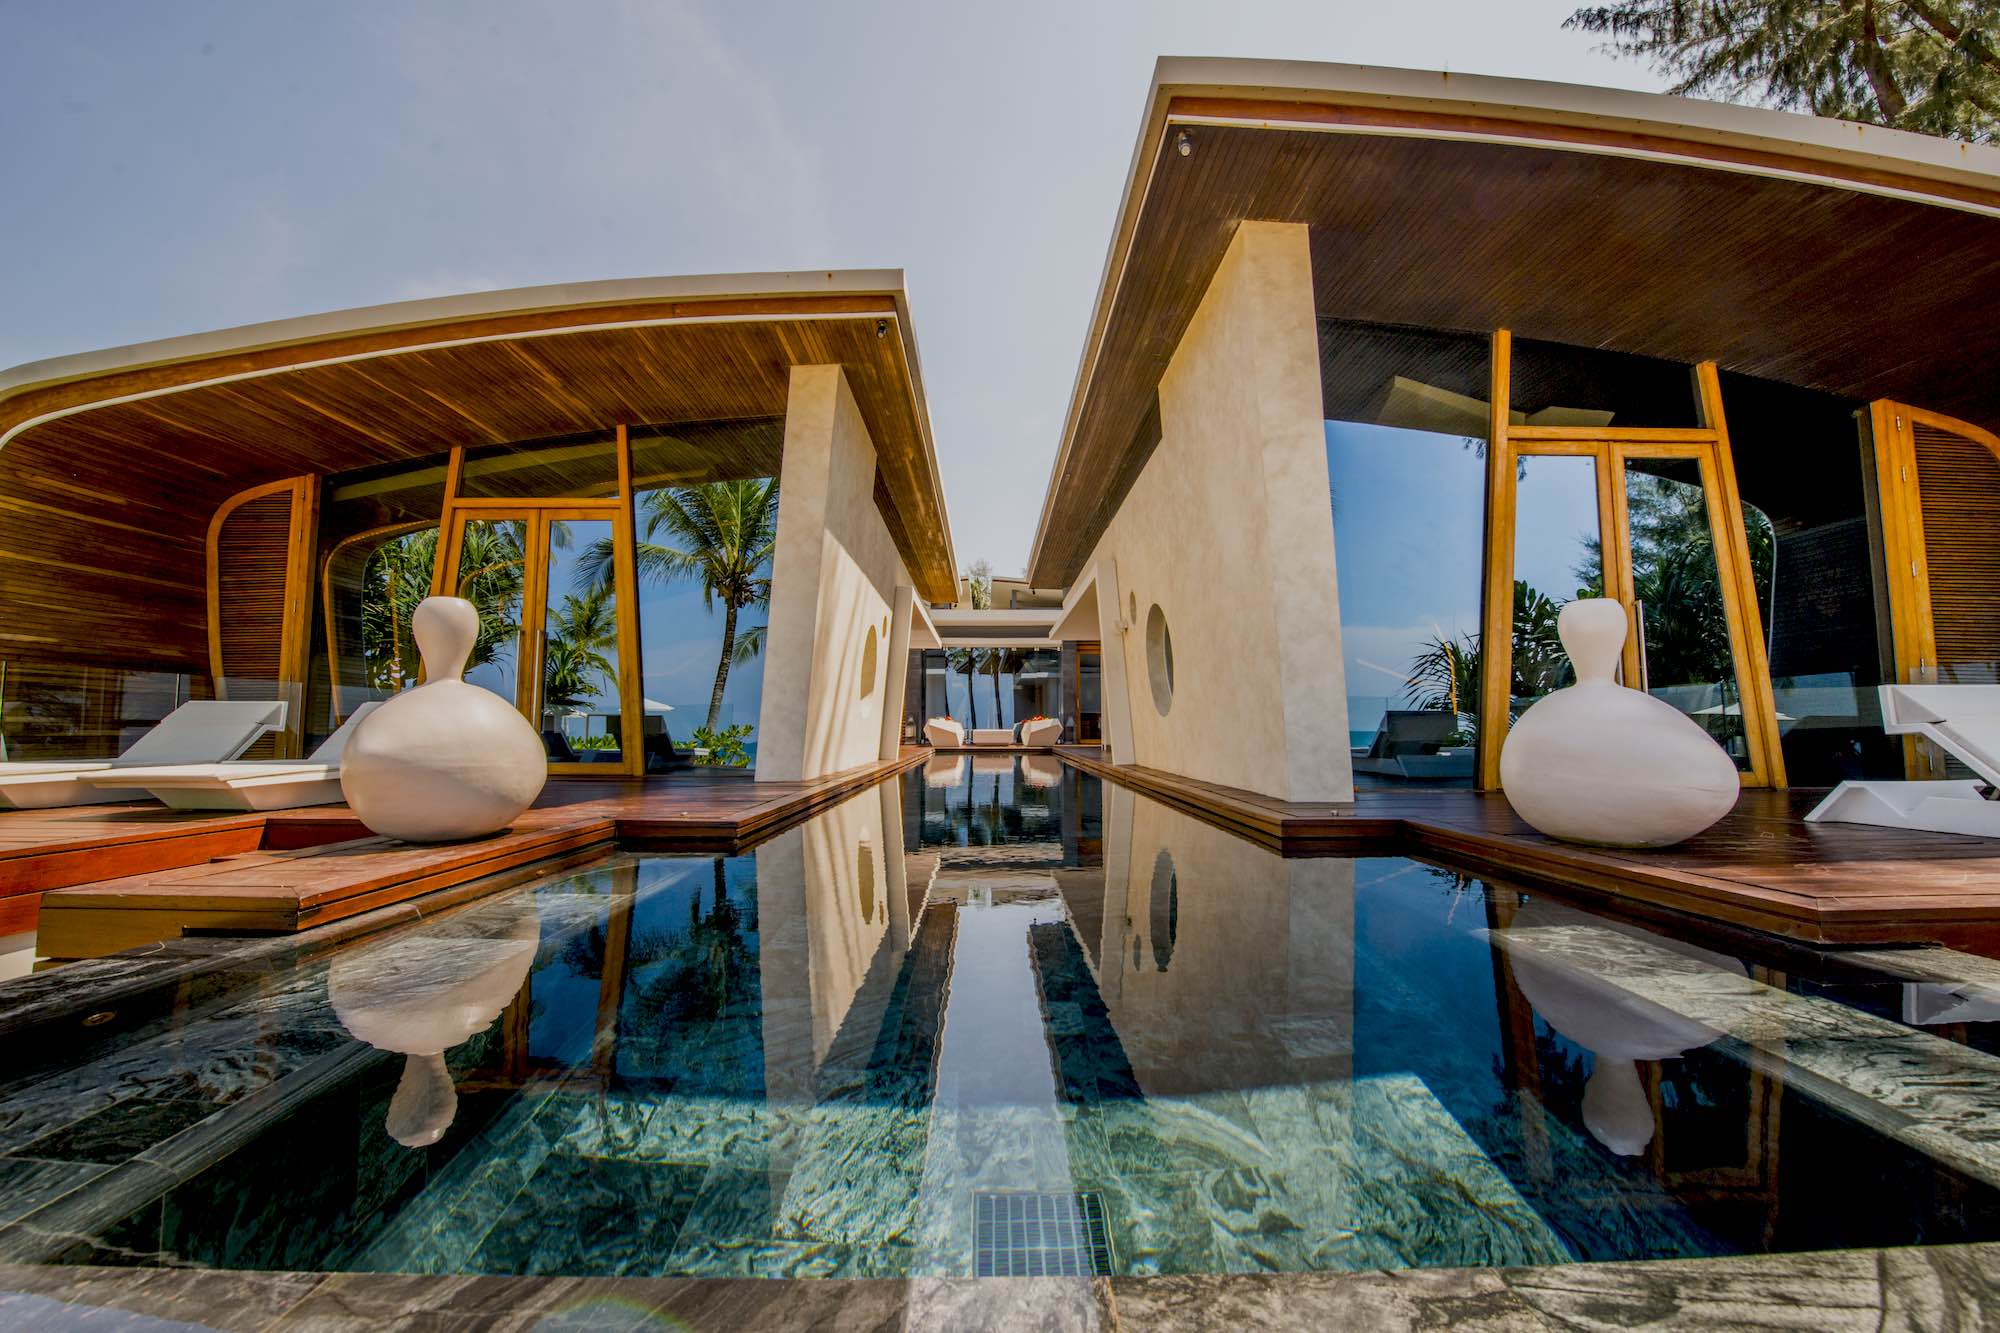 10 Celebrity Villas: Where Do the Rich & Famous Stay?